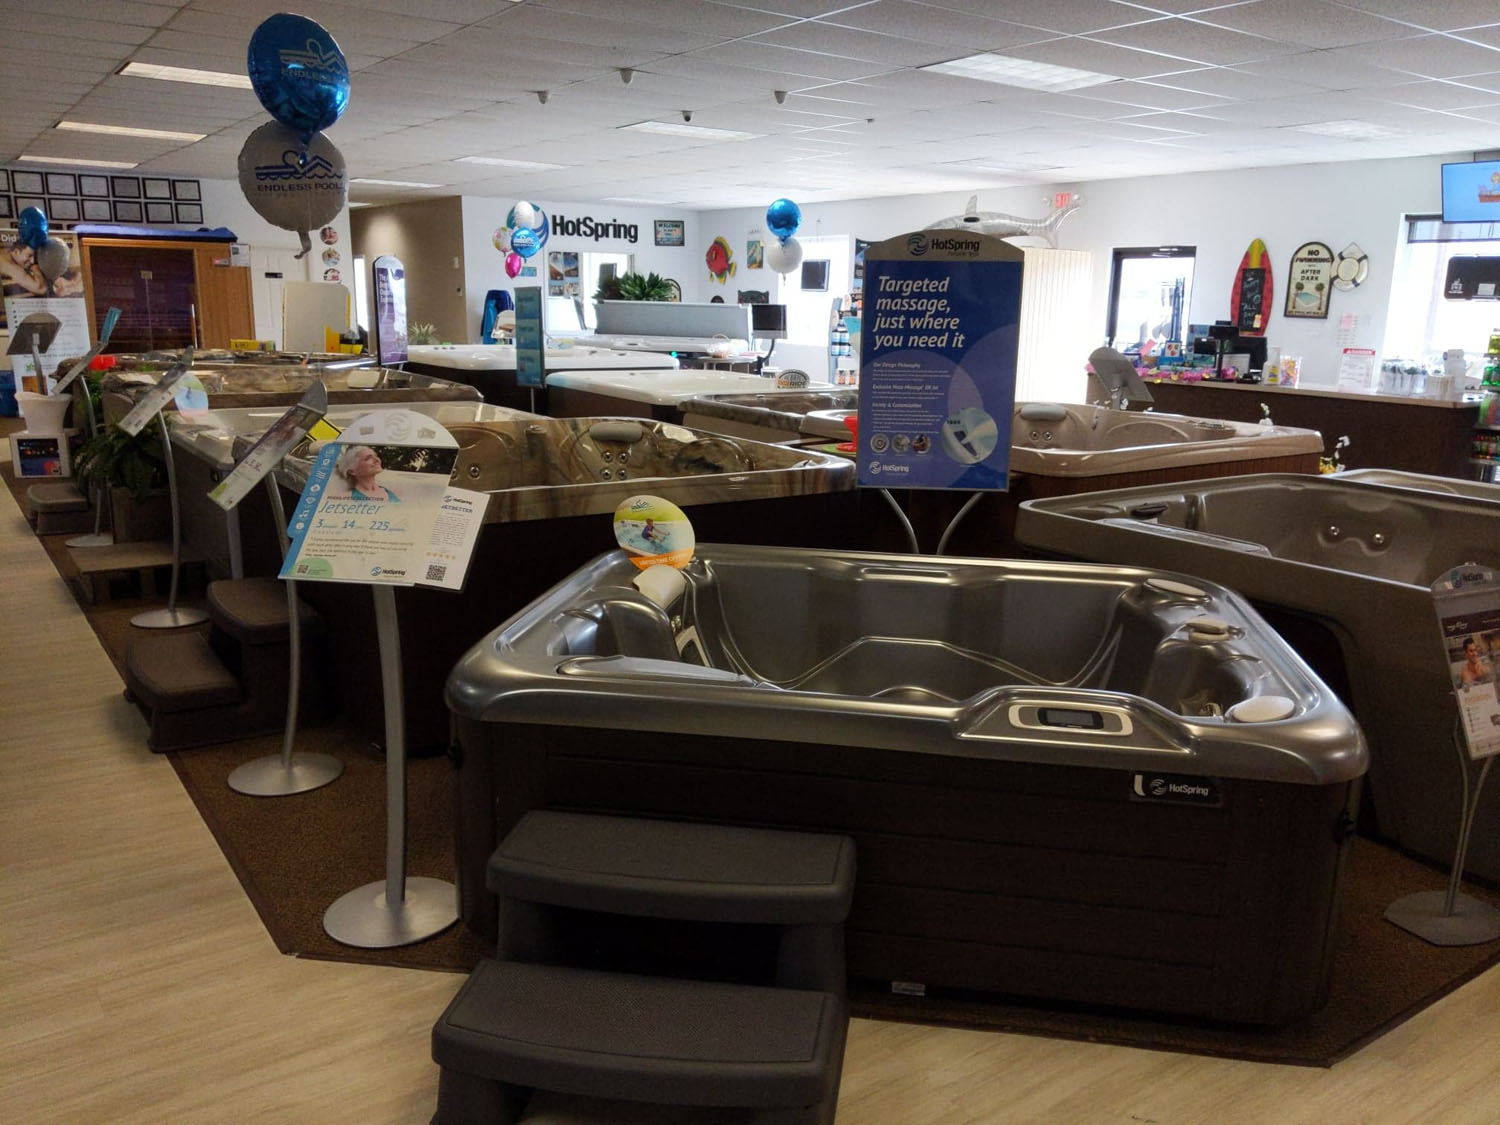 All hot tubs on display in the Bloomsburg PA showroom